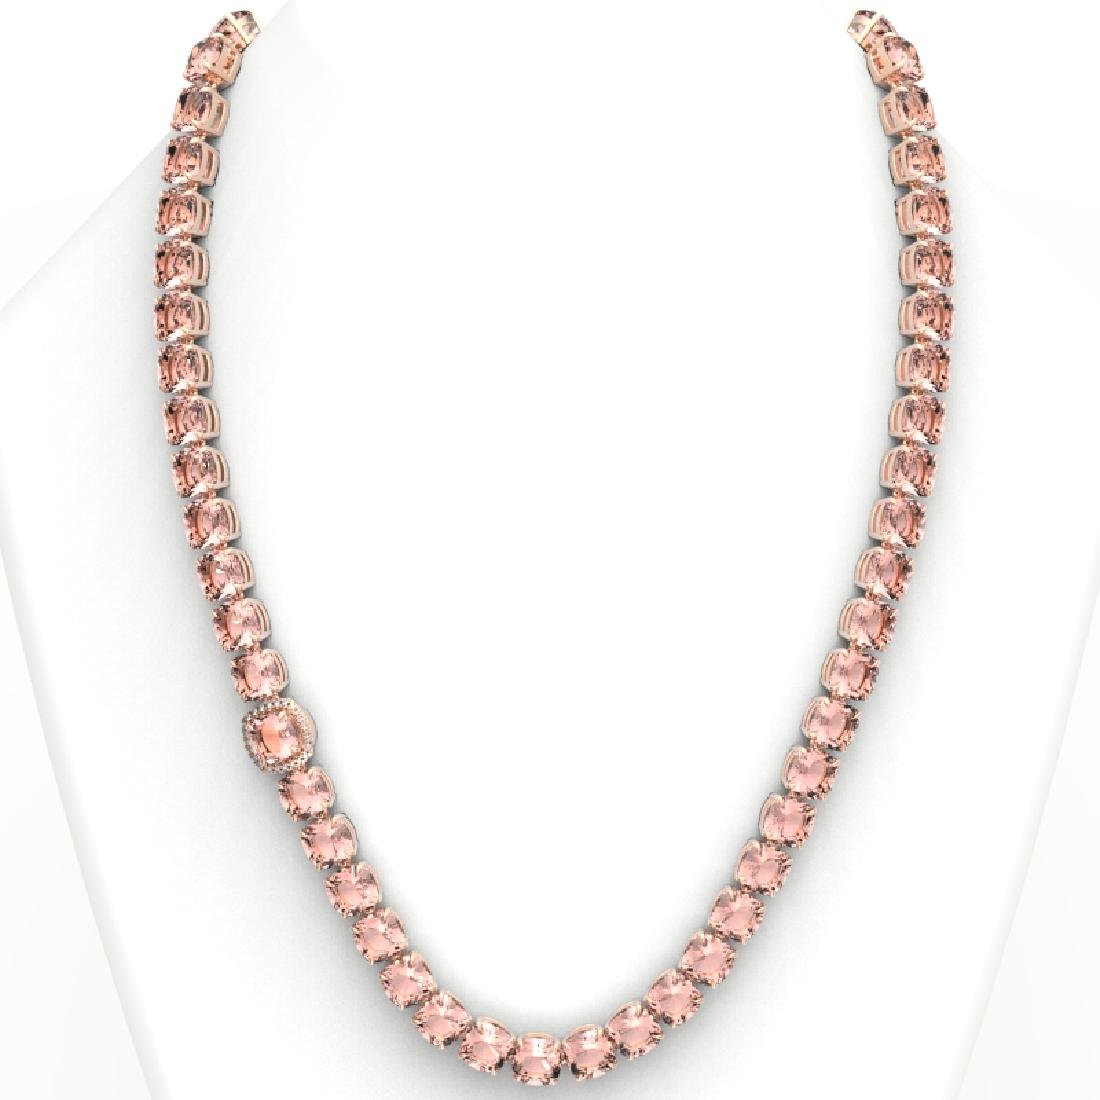 87 CTW Morganite & VS/SI Diamond Pave Necklace 14K Rose - 3